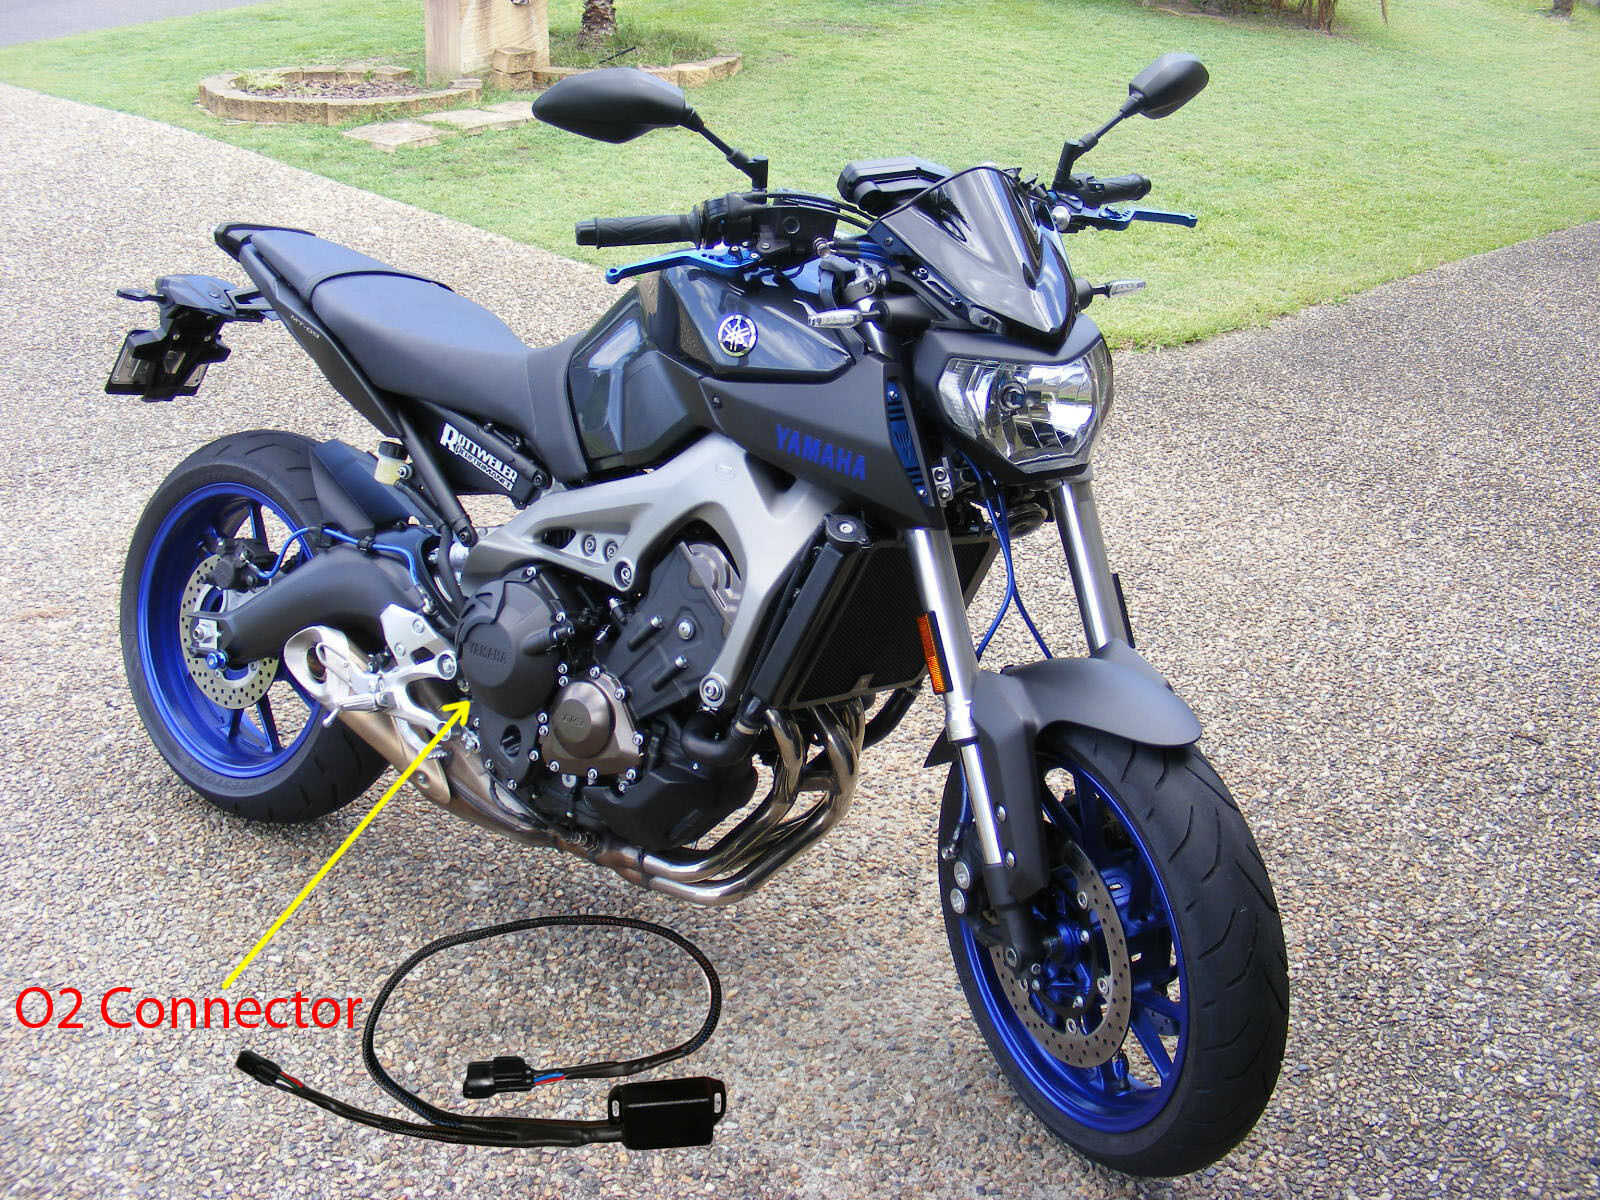 yamaha mt 09 fz 09 mt09 fz09 tracer fj09 fj 09 o2. Black Bedroom Furniture Sets. Home Design Ideas